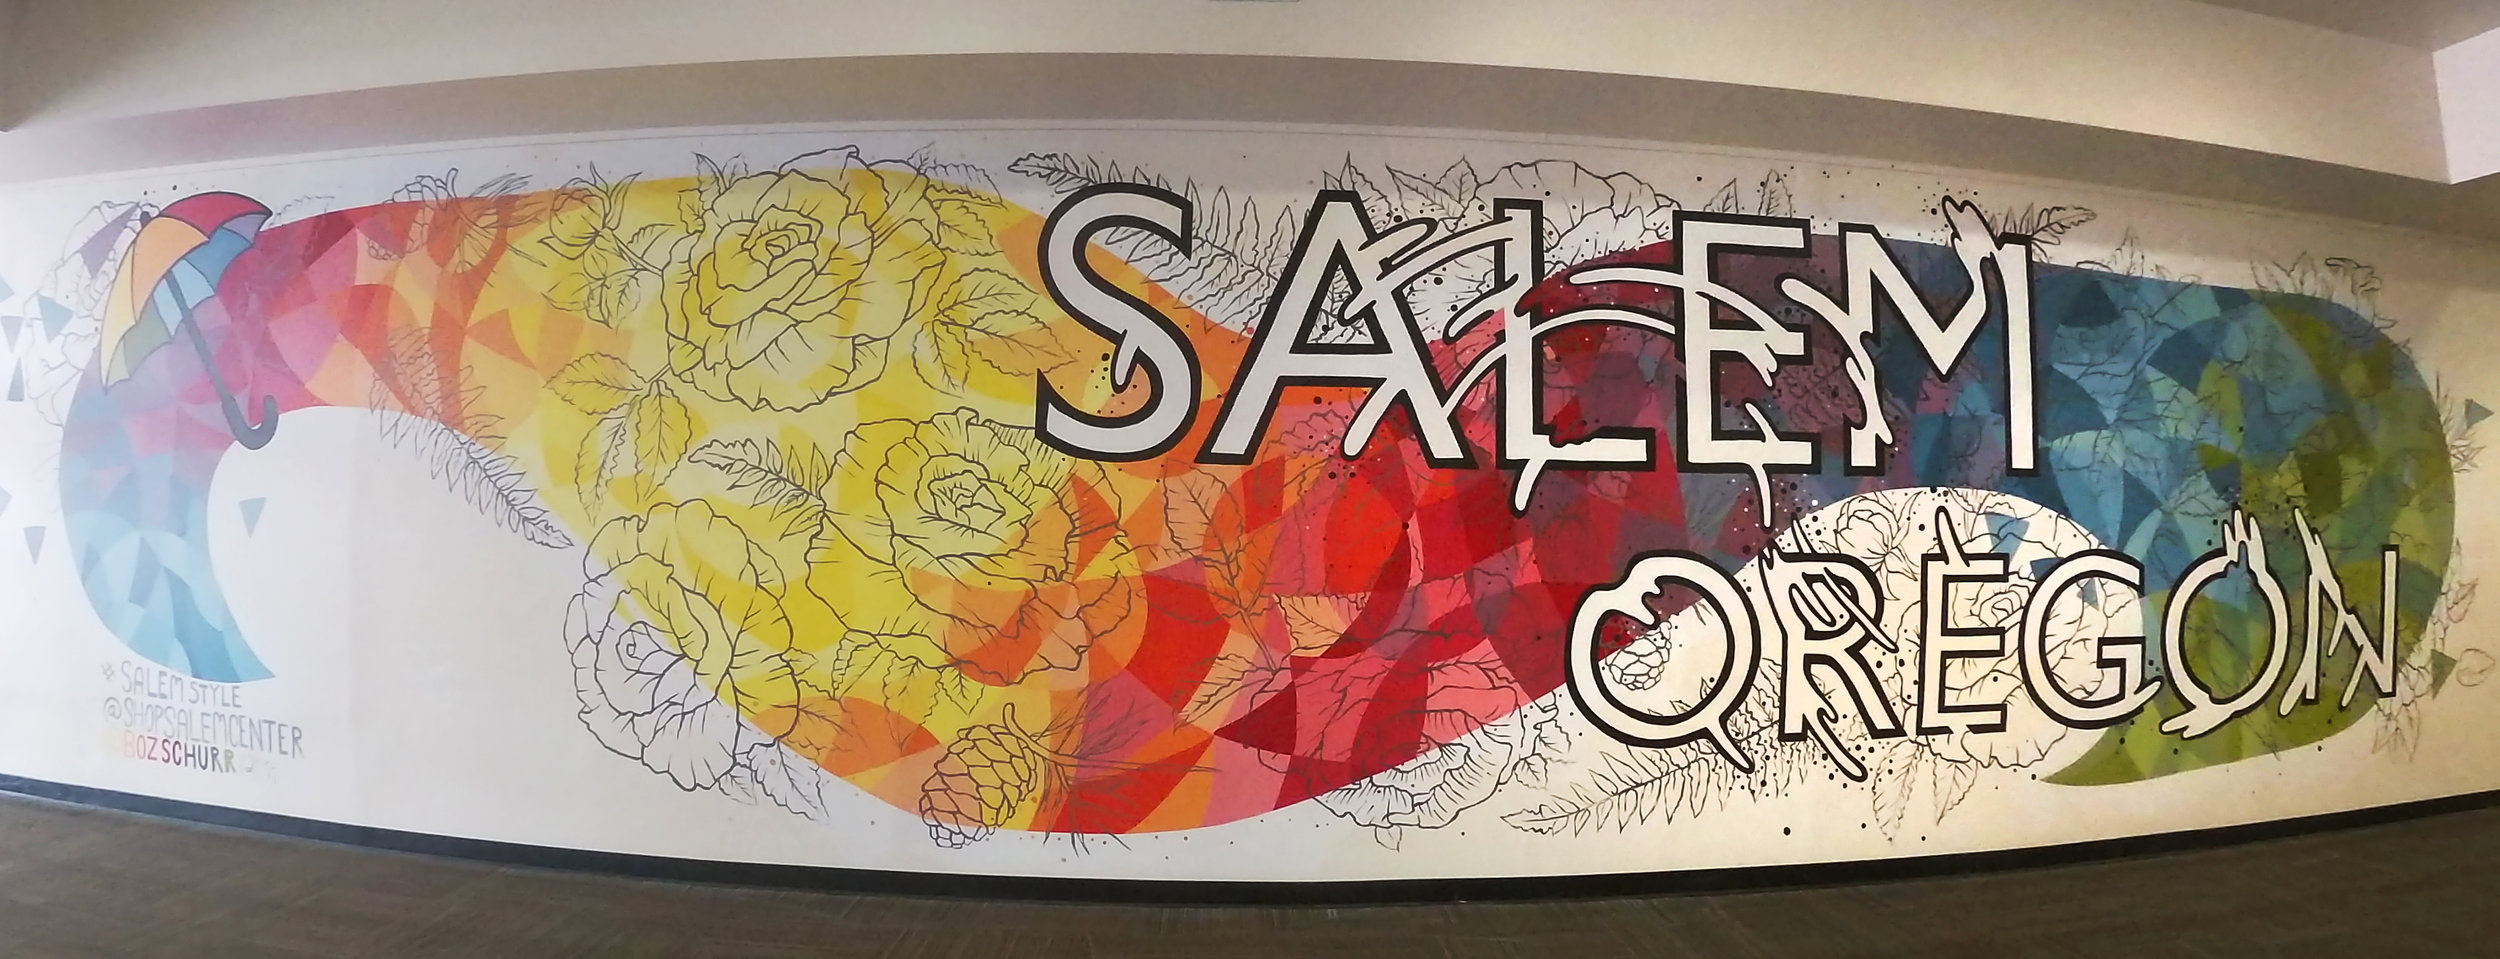 Mural for Salem Center, Salem, Oregon 2019 Check out my front page news story  HERE